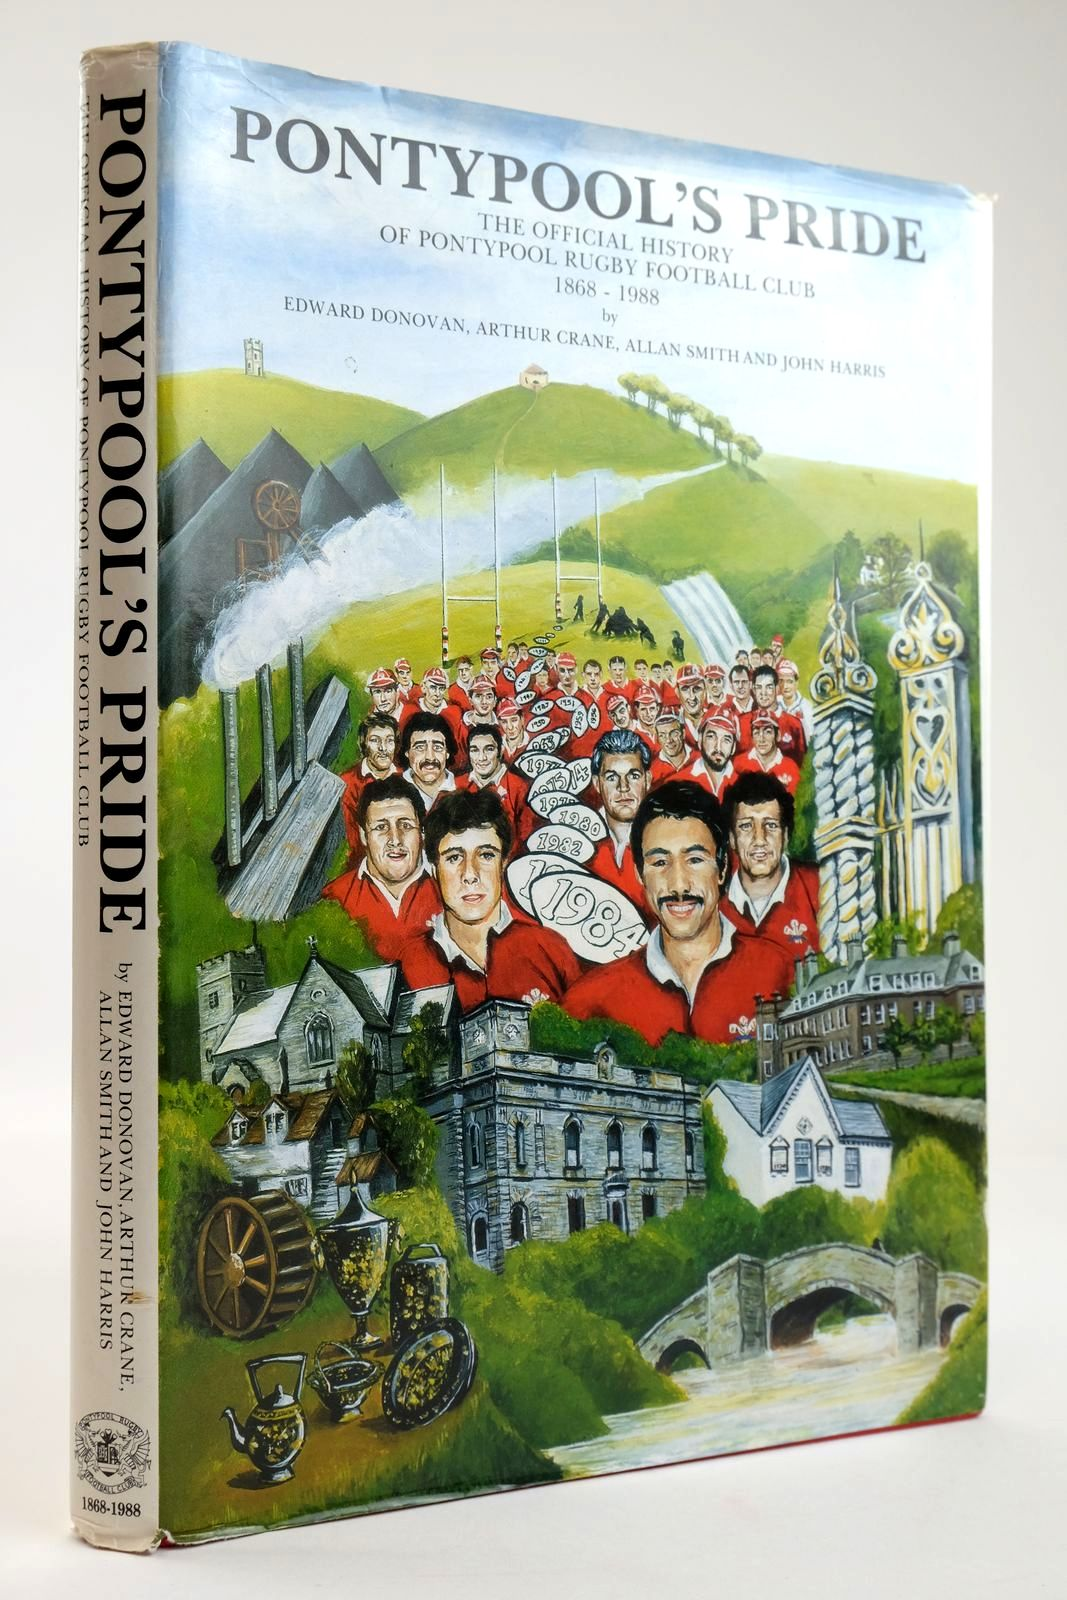 Photo of PONTYPOOL'S PRIDE written by Donovan, Edward Crane, Arthur Smith, Allan Harris, John published by Old Bakehouse Publications (STOCK CODE: 2133550)  for sale by Stella & Rose's Books